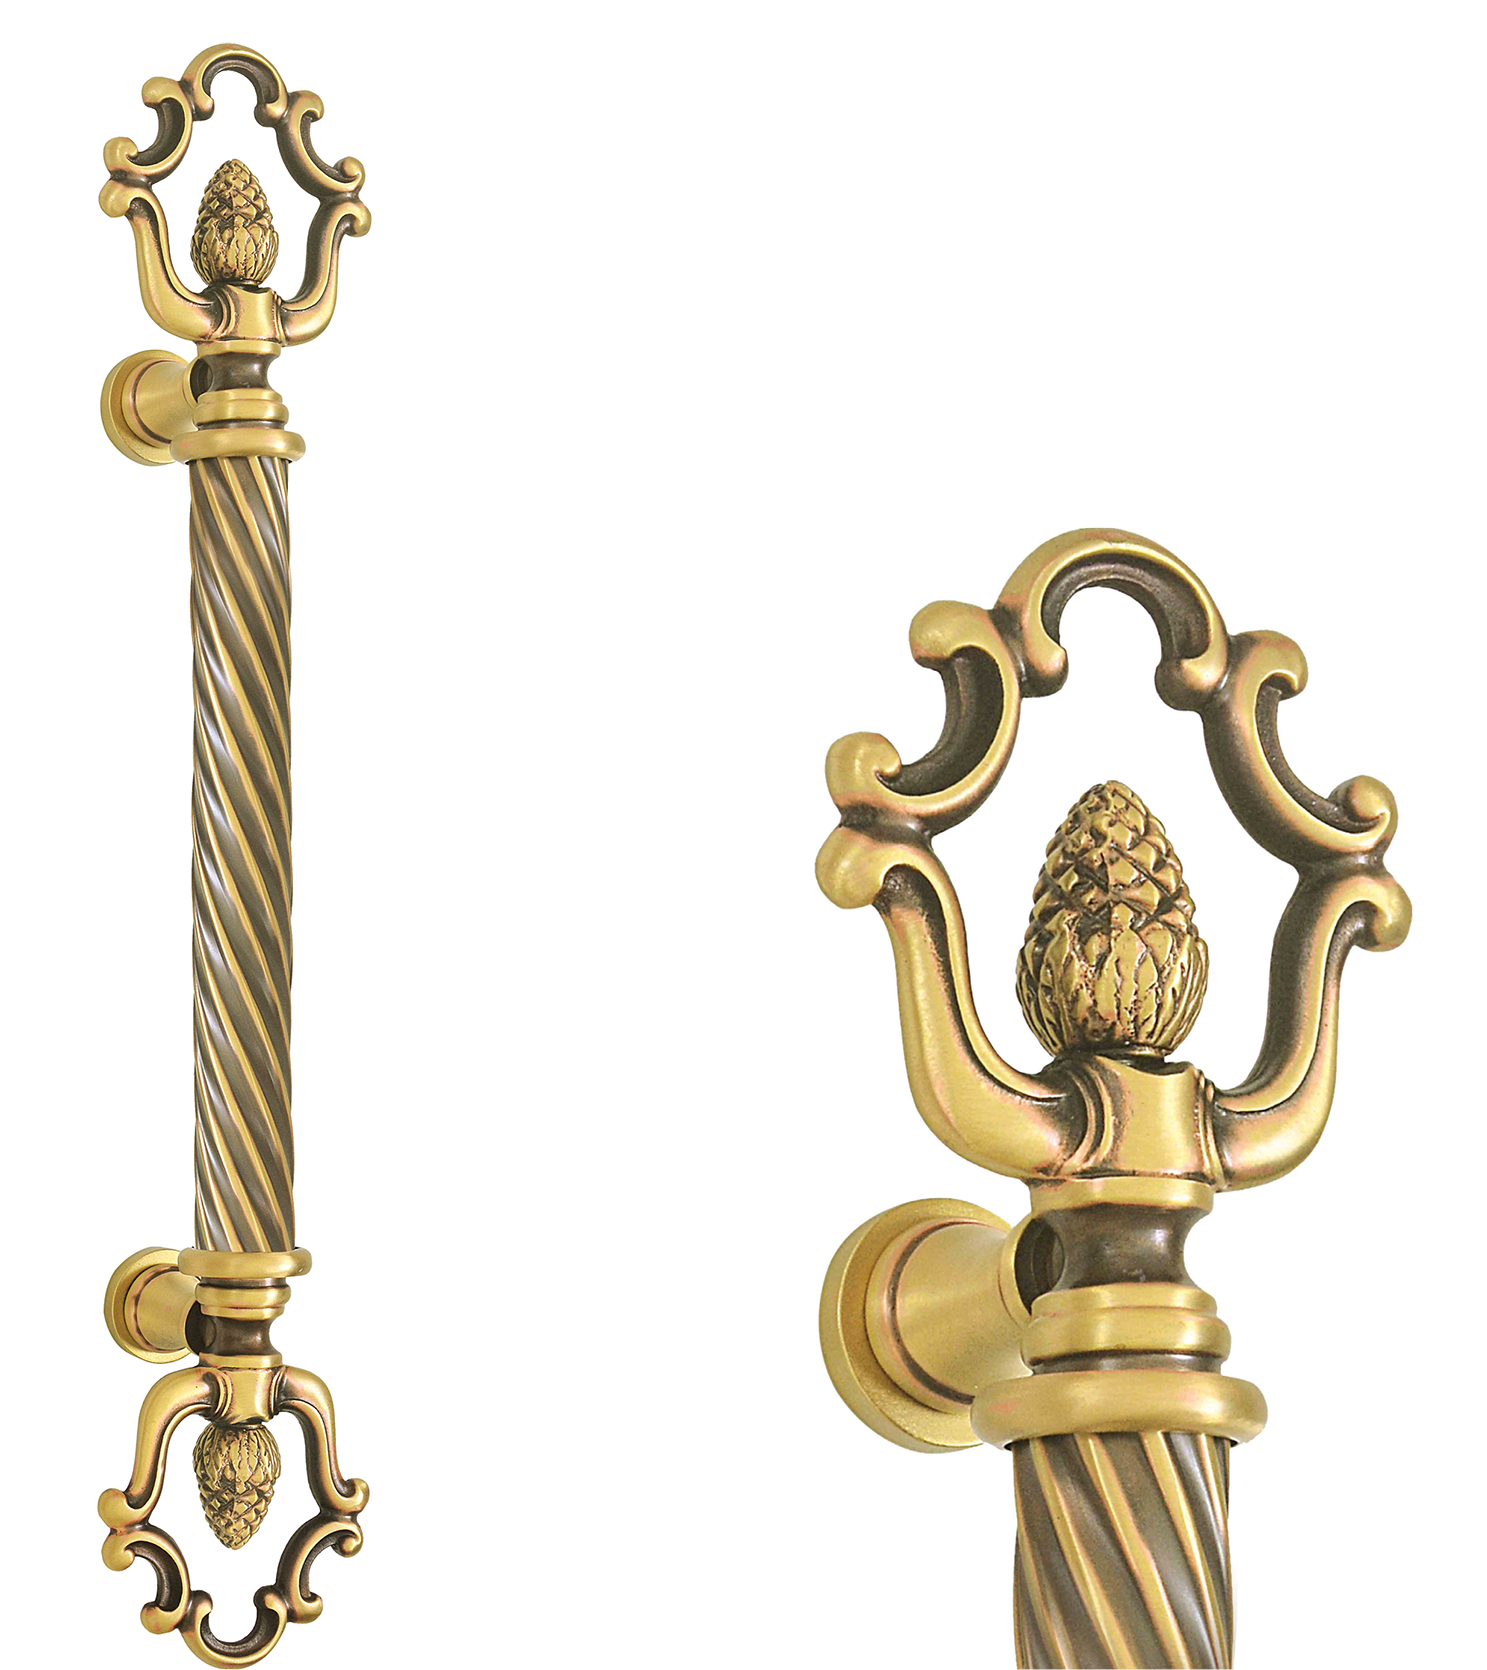 Italian main door pull handle and locks for glass and wooden doors  for apartments